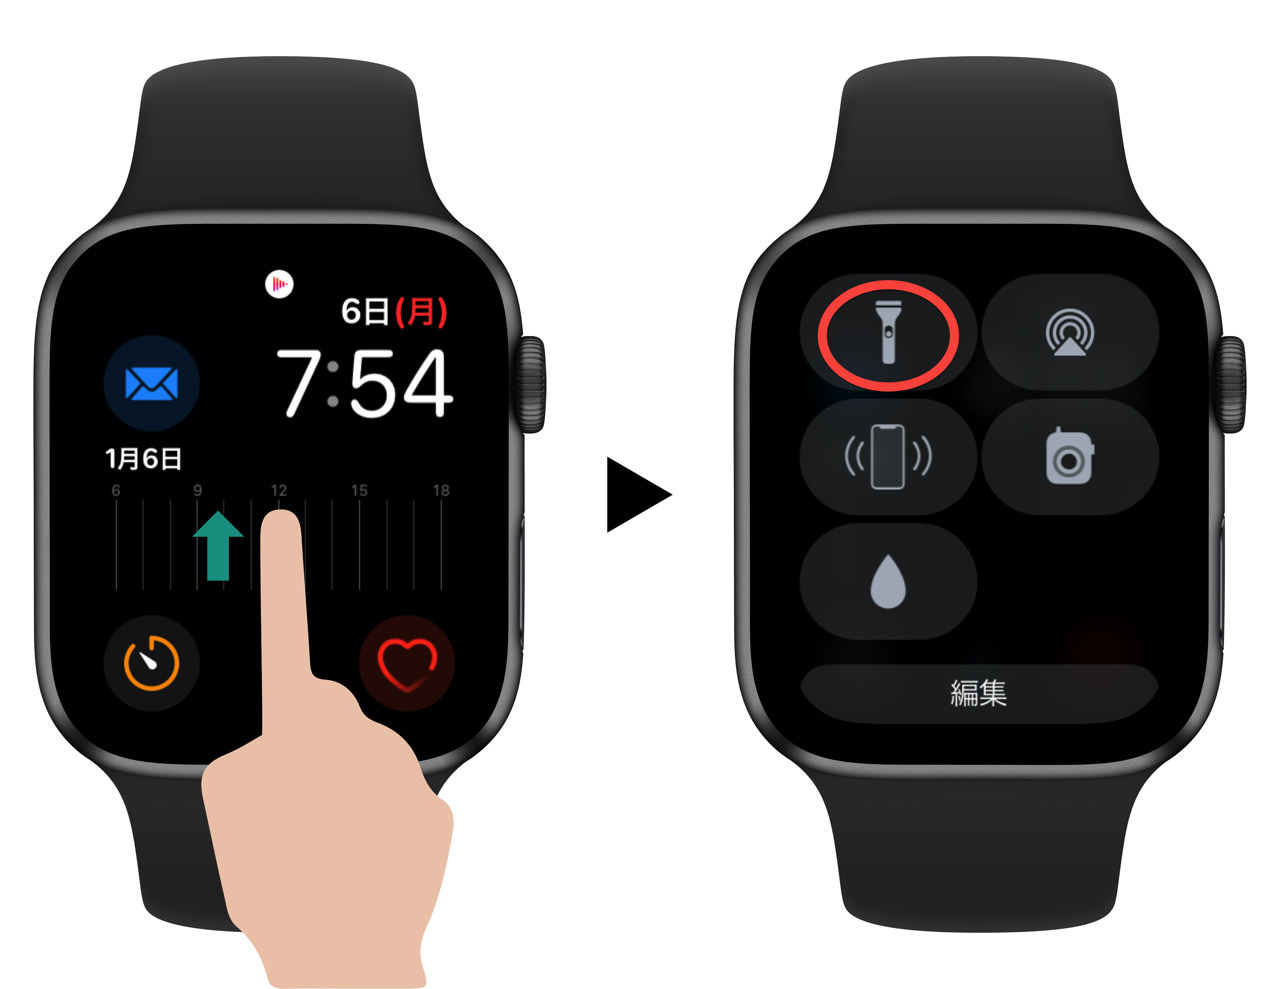 Apple watch flashlight9